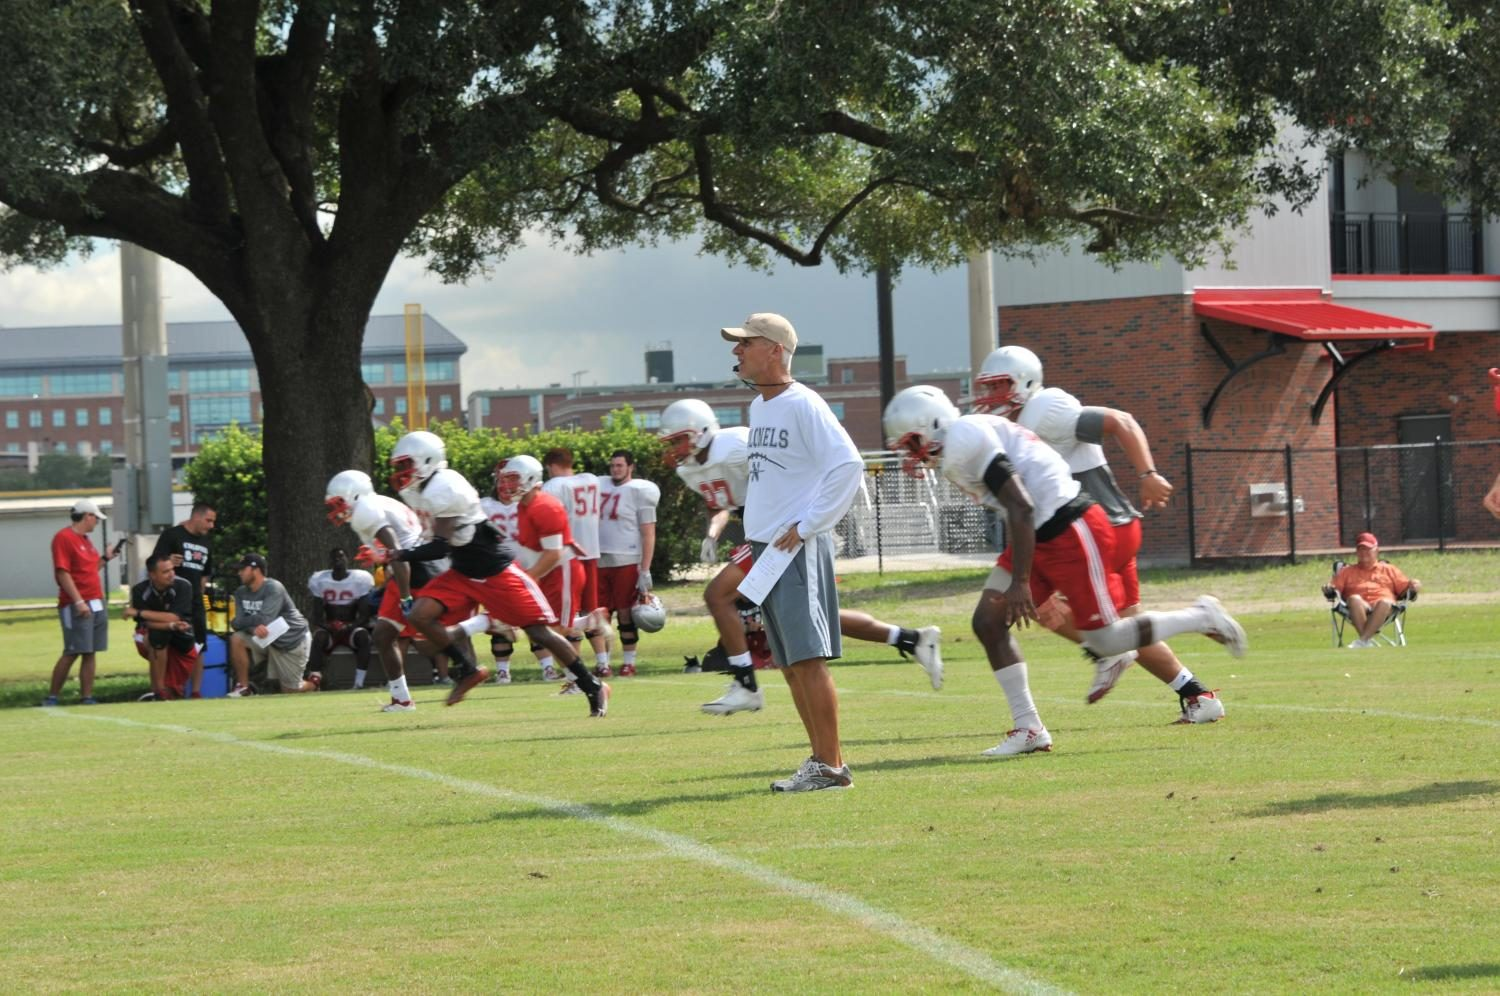 Coach Rebowe looks onto his Colonels as they have their first practice session before their first game against McNesse on August 31, 2017.